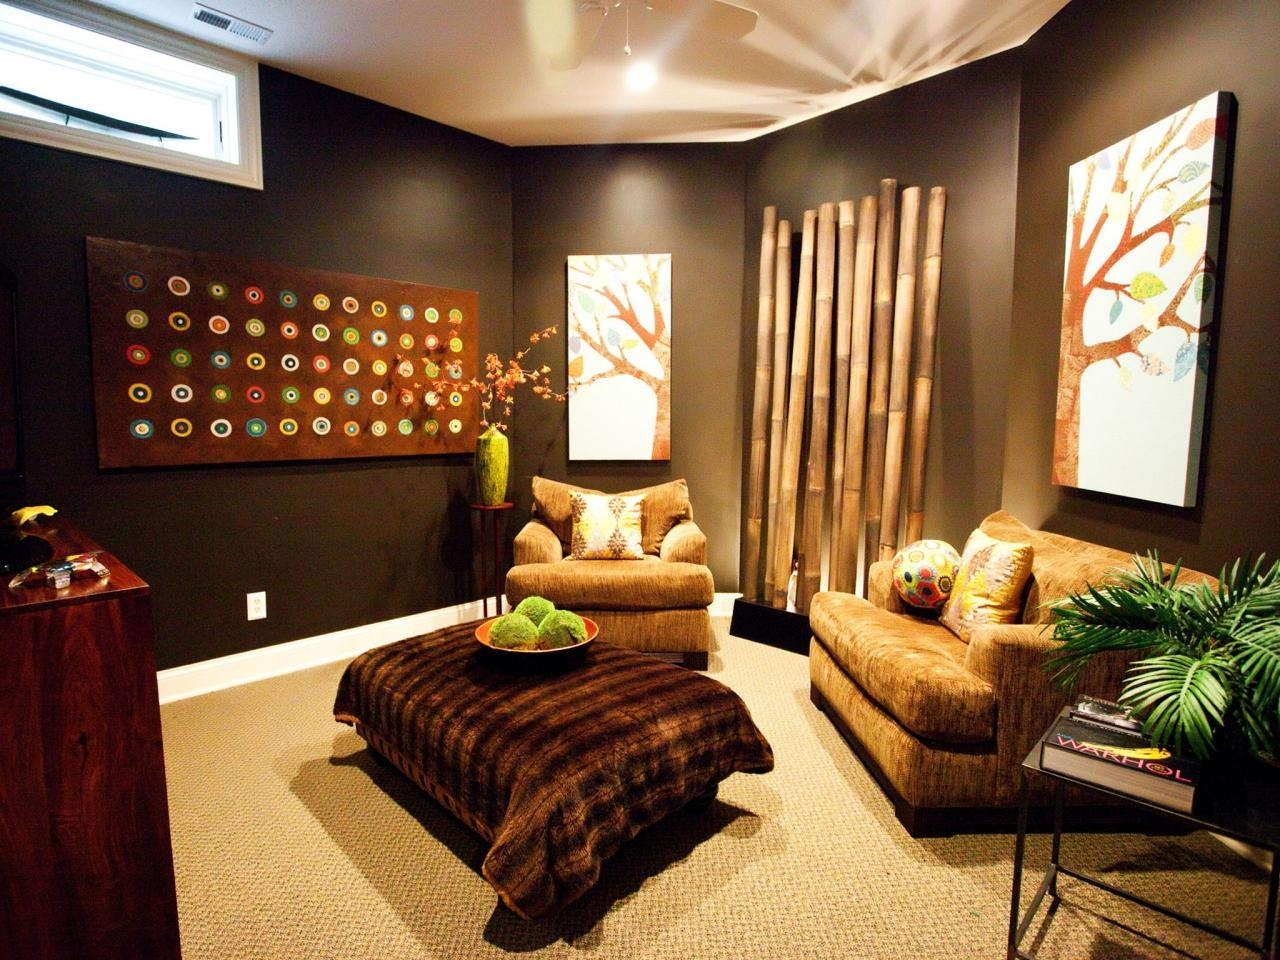 Media Room Decor Ideas At Best Home Design 2018 Tips Intended For Most Popular Wall Accents For Media Room (Gallery 1 of 15)